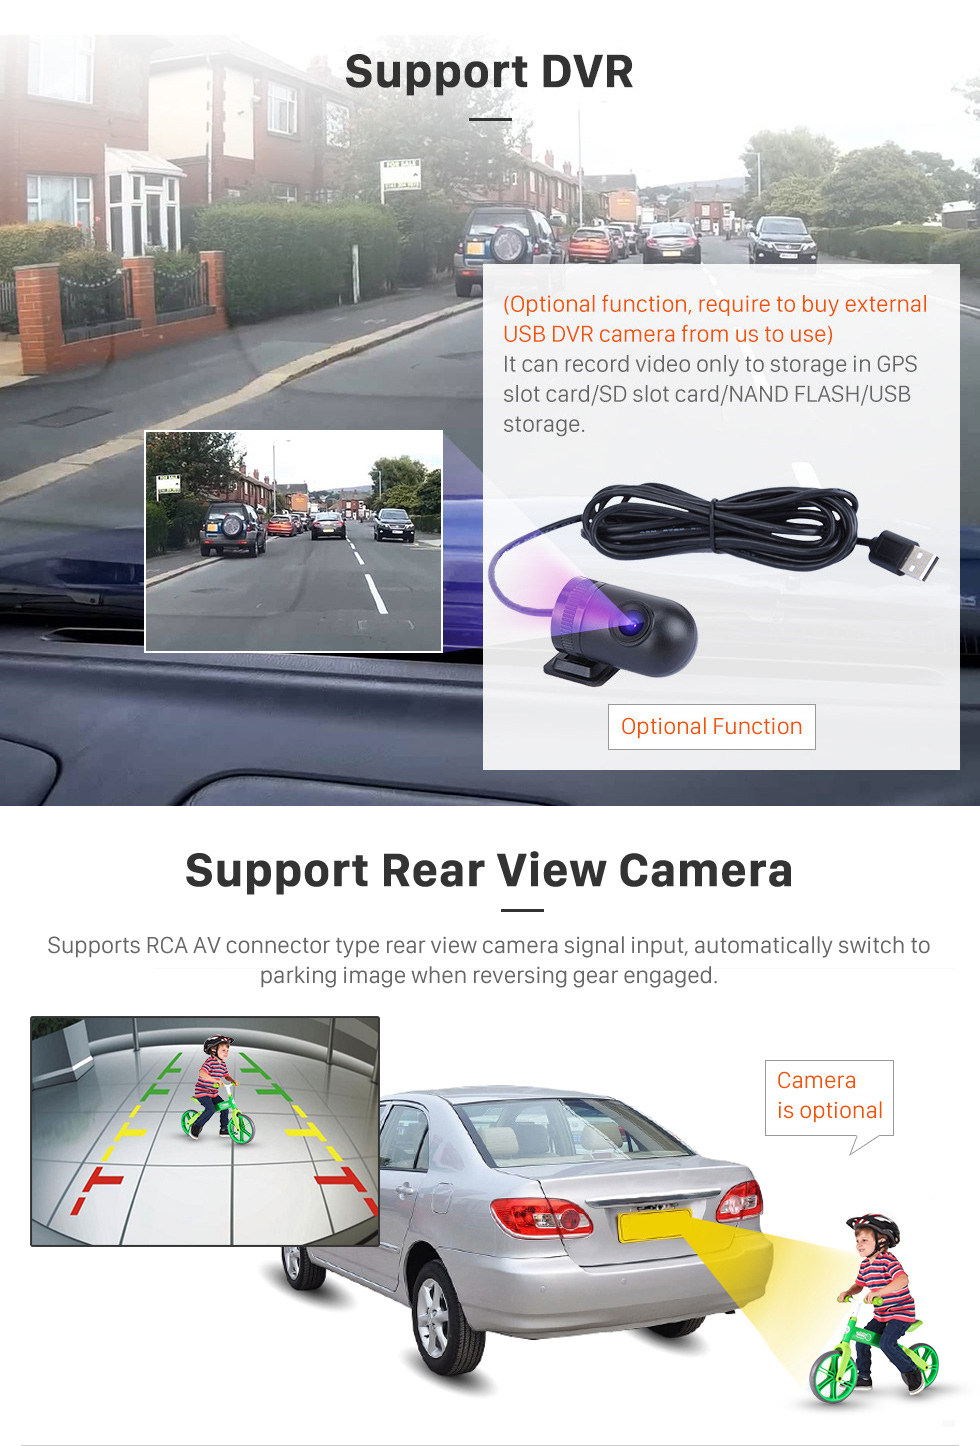 Seicane 9 inch Android 9.0 Bluetooth Car GPS Navigation Stereo for 2011-2016 Lifan X60 Radio support RDS 4G WiFi Mirror Link OBD2 Steering Wheel Control